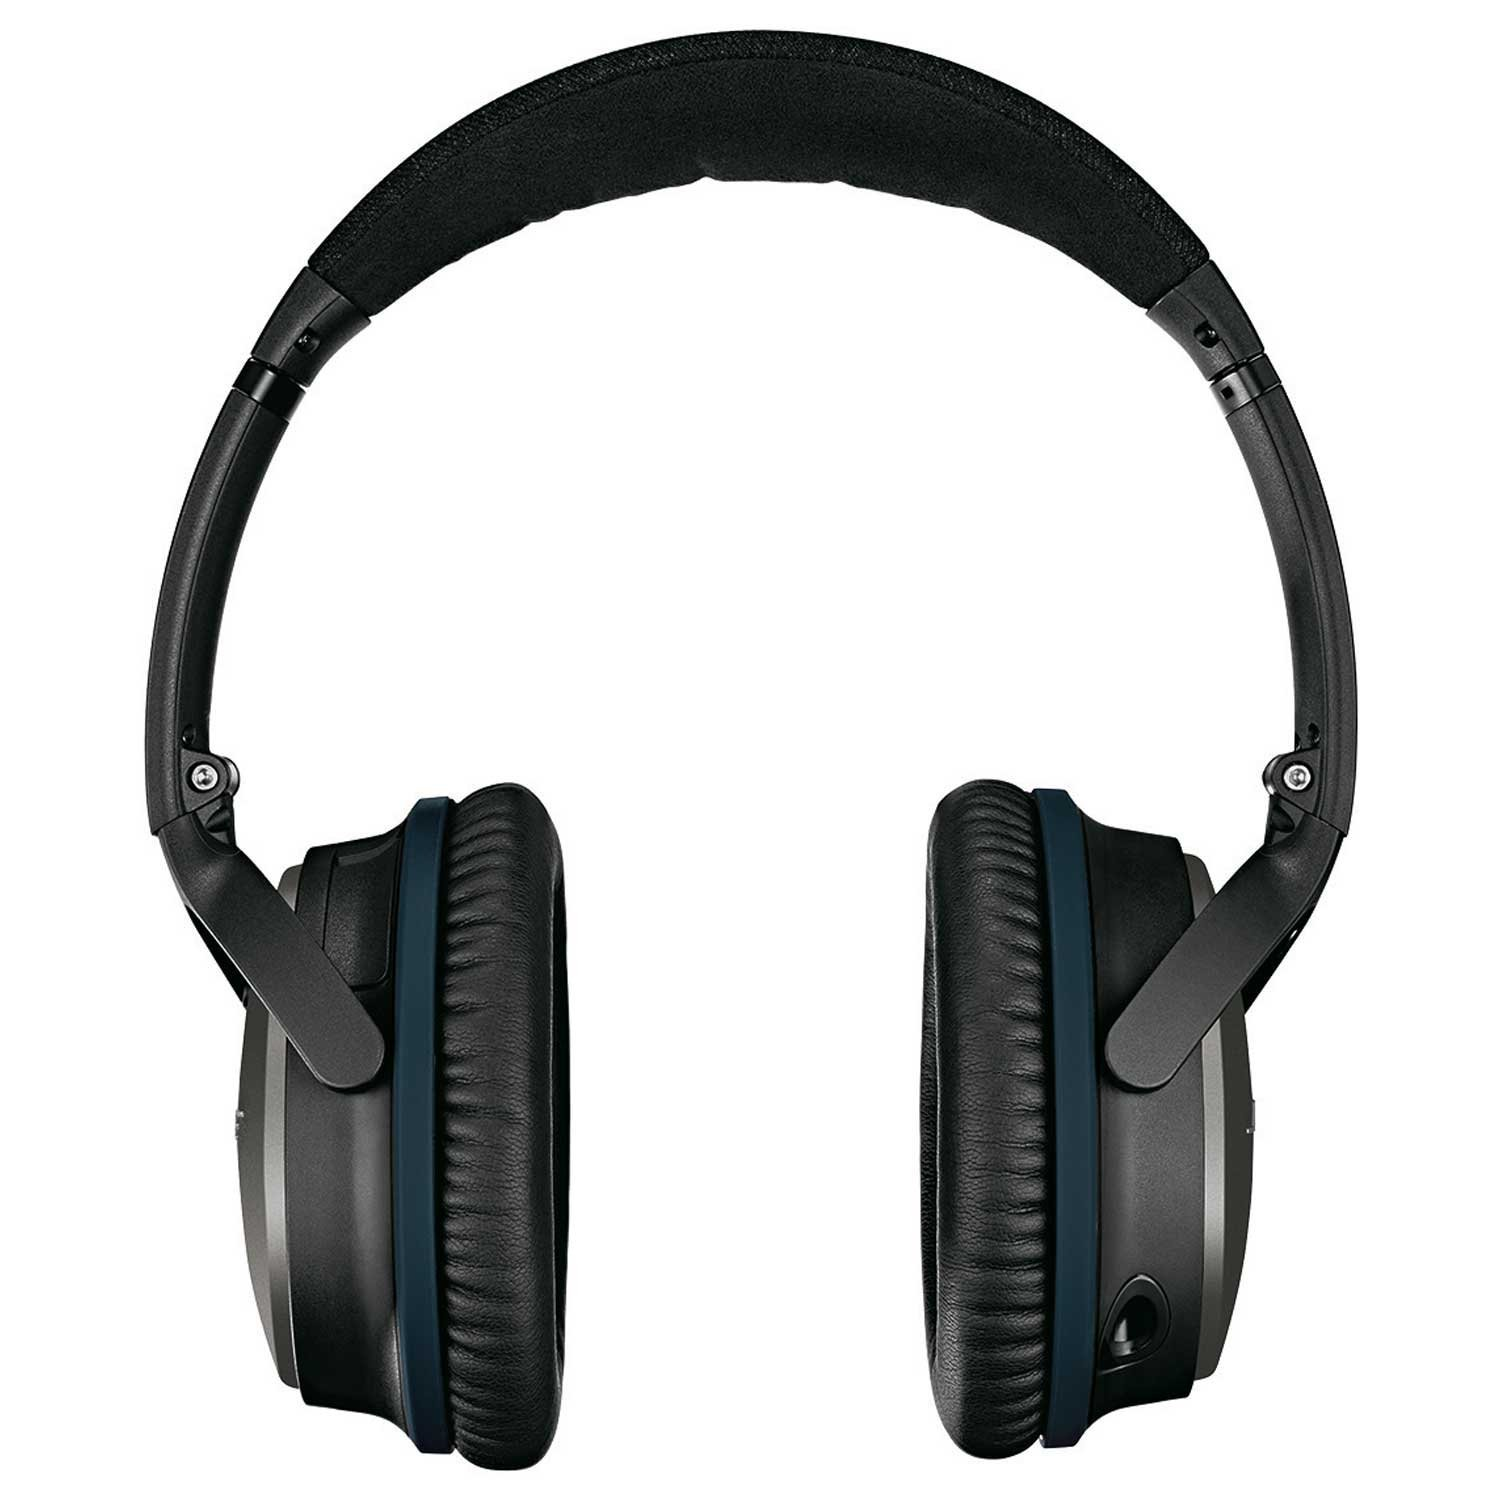 soundvisionreview comforter headphones bose comfort quietcomfort review quiet vs